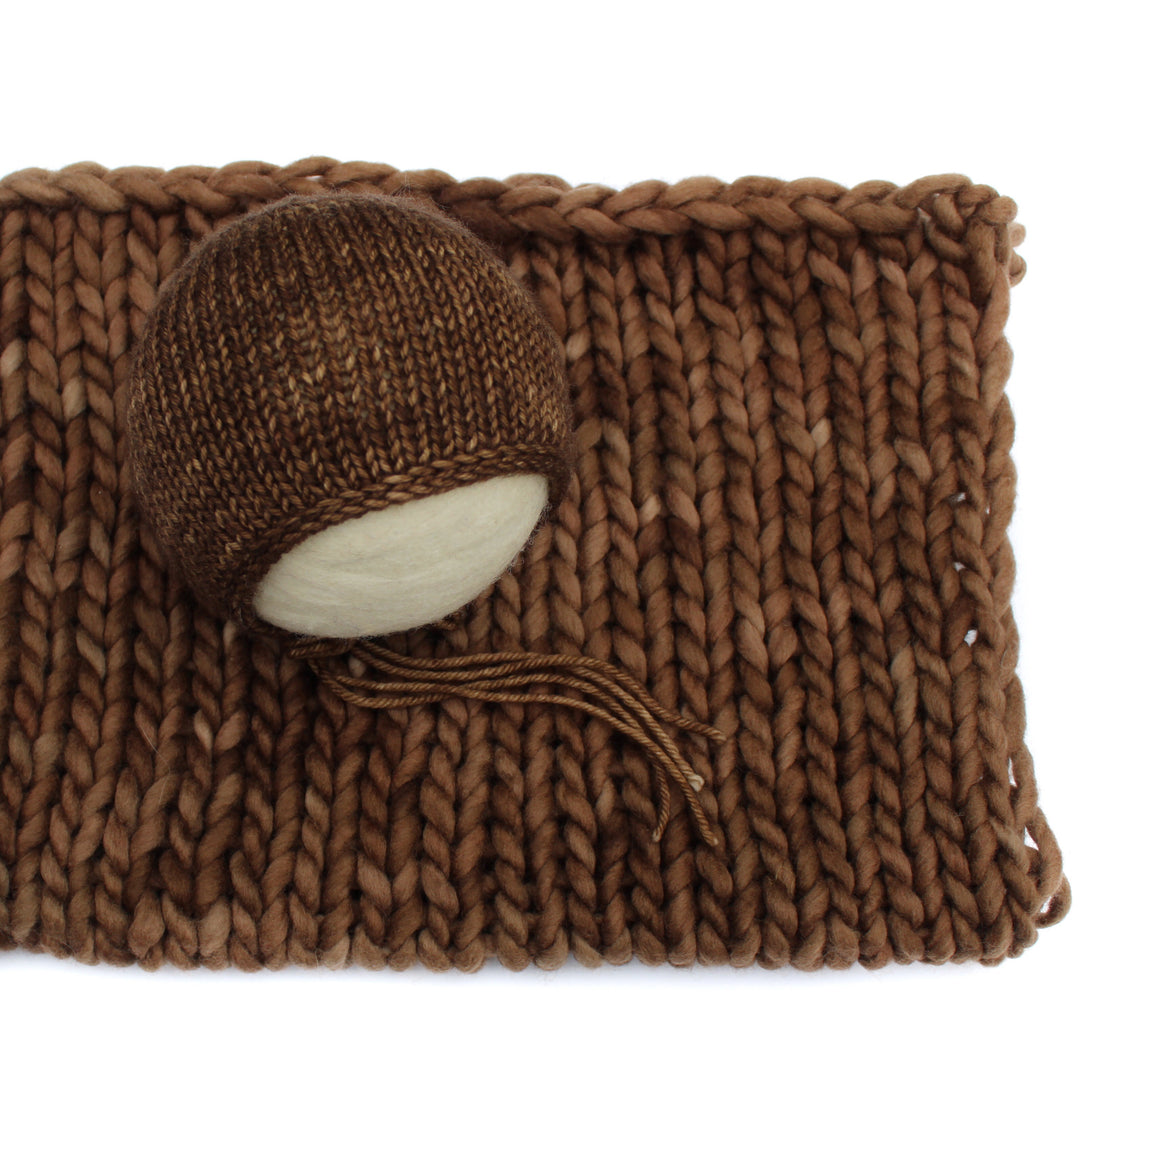 Chocolate Hand Dyed Merino Newborn Bonnet & Layer - Knit Photography Props by Double the Stitches